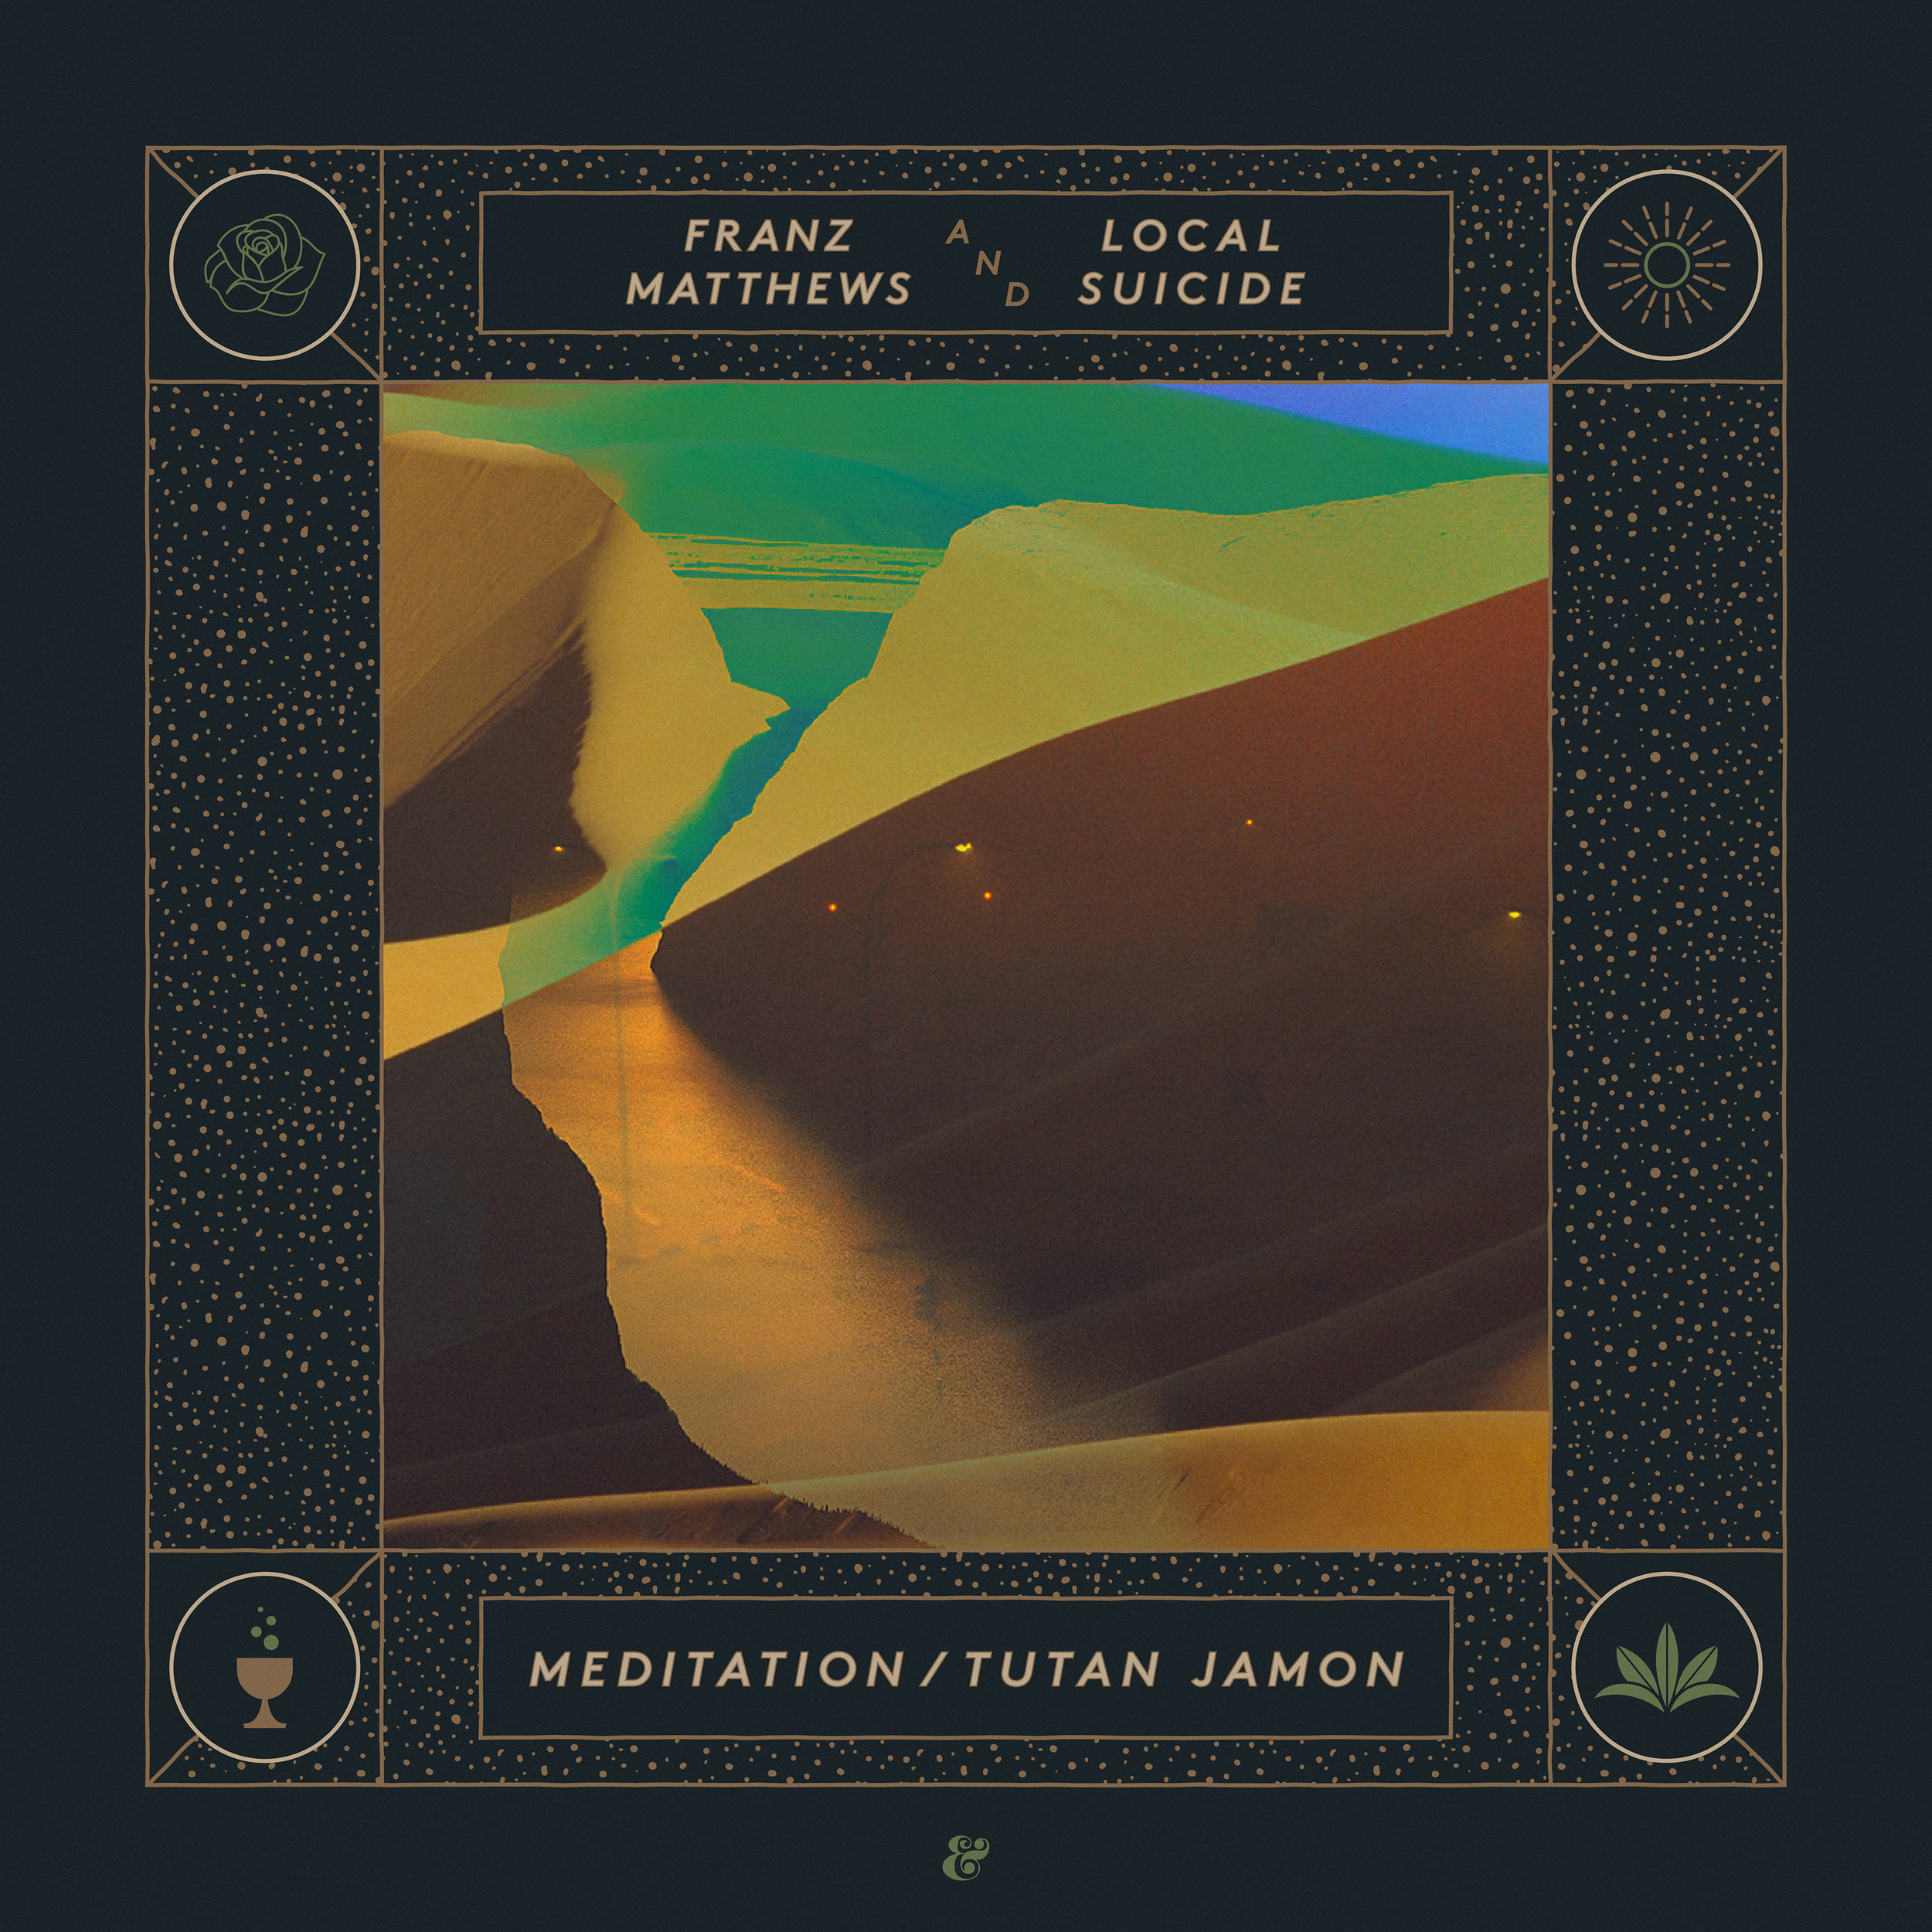 FRANZ MATTHEWS & LOCAL SUICIDEMeditation / Tutan Jamon EP - Music Production & Mixing